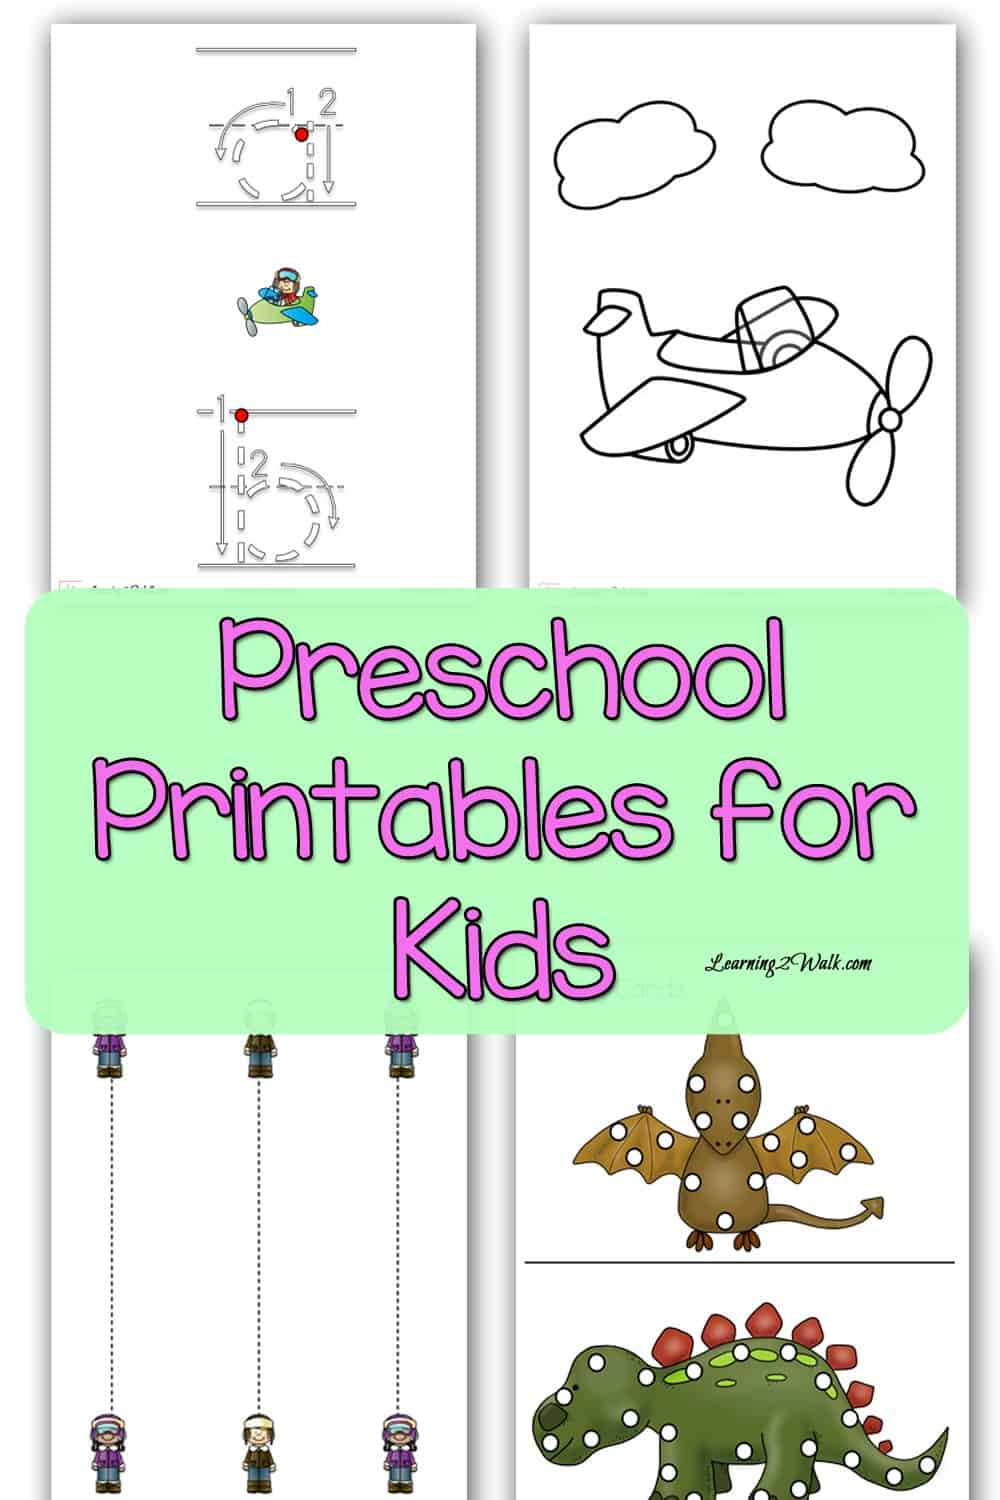 Looking for a few preschool printables for kids or your class? Why not choose one from this collection?